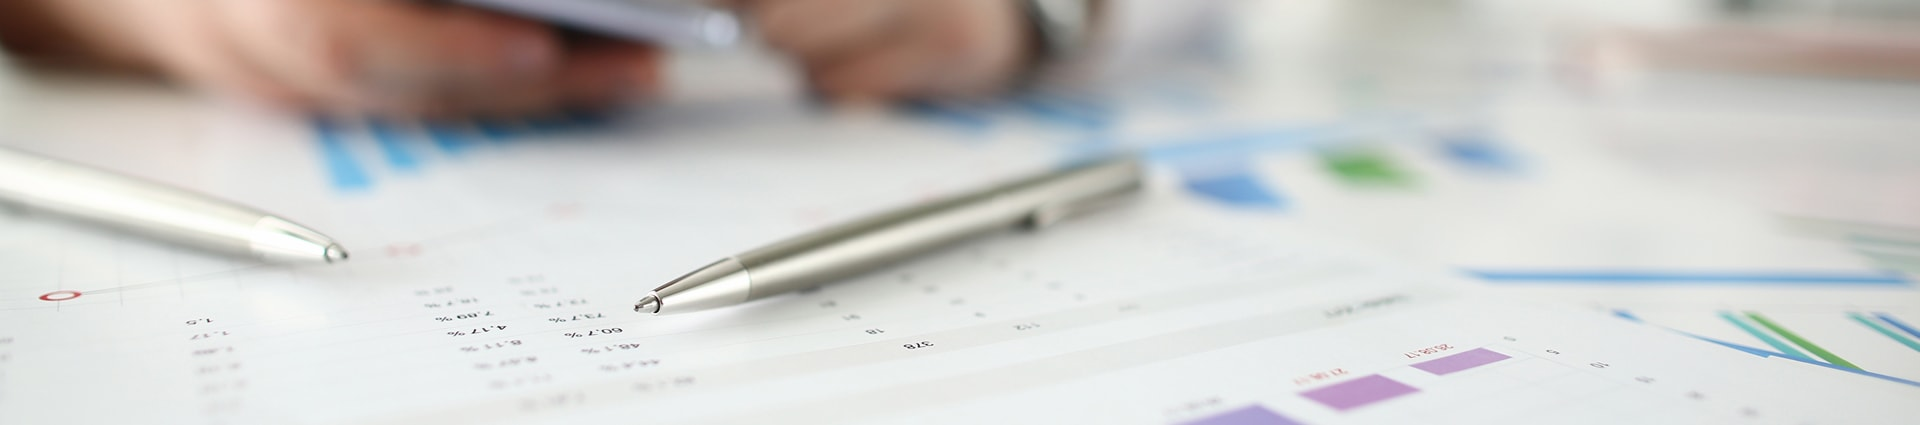 Billing and accounting paperwork